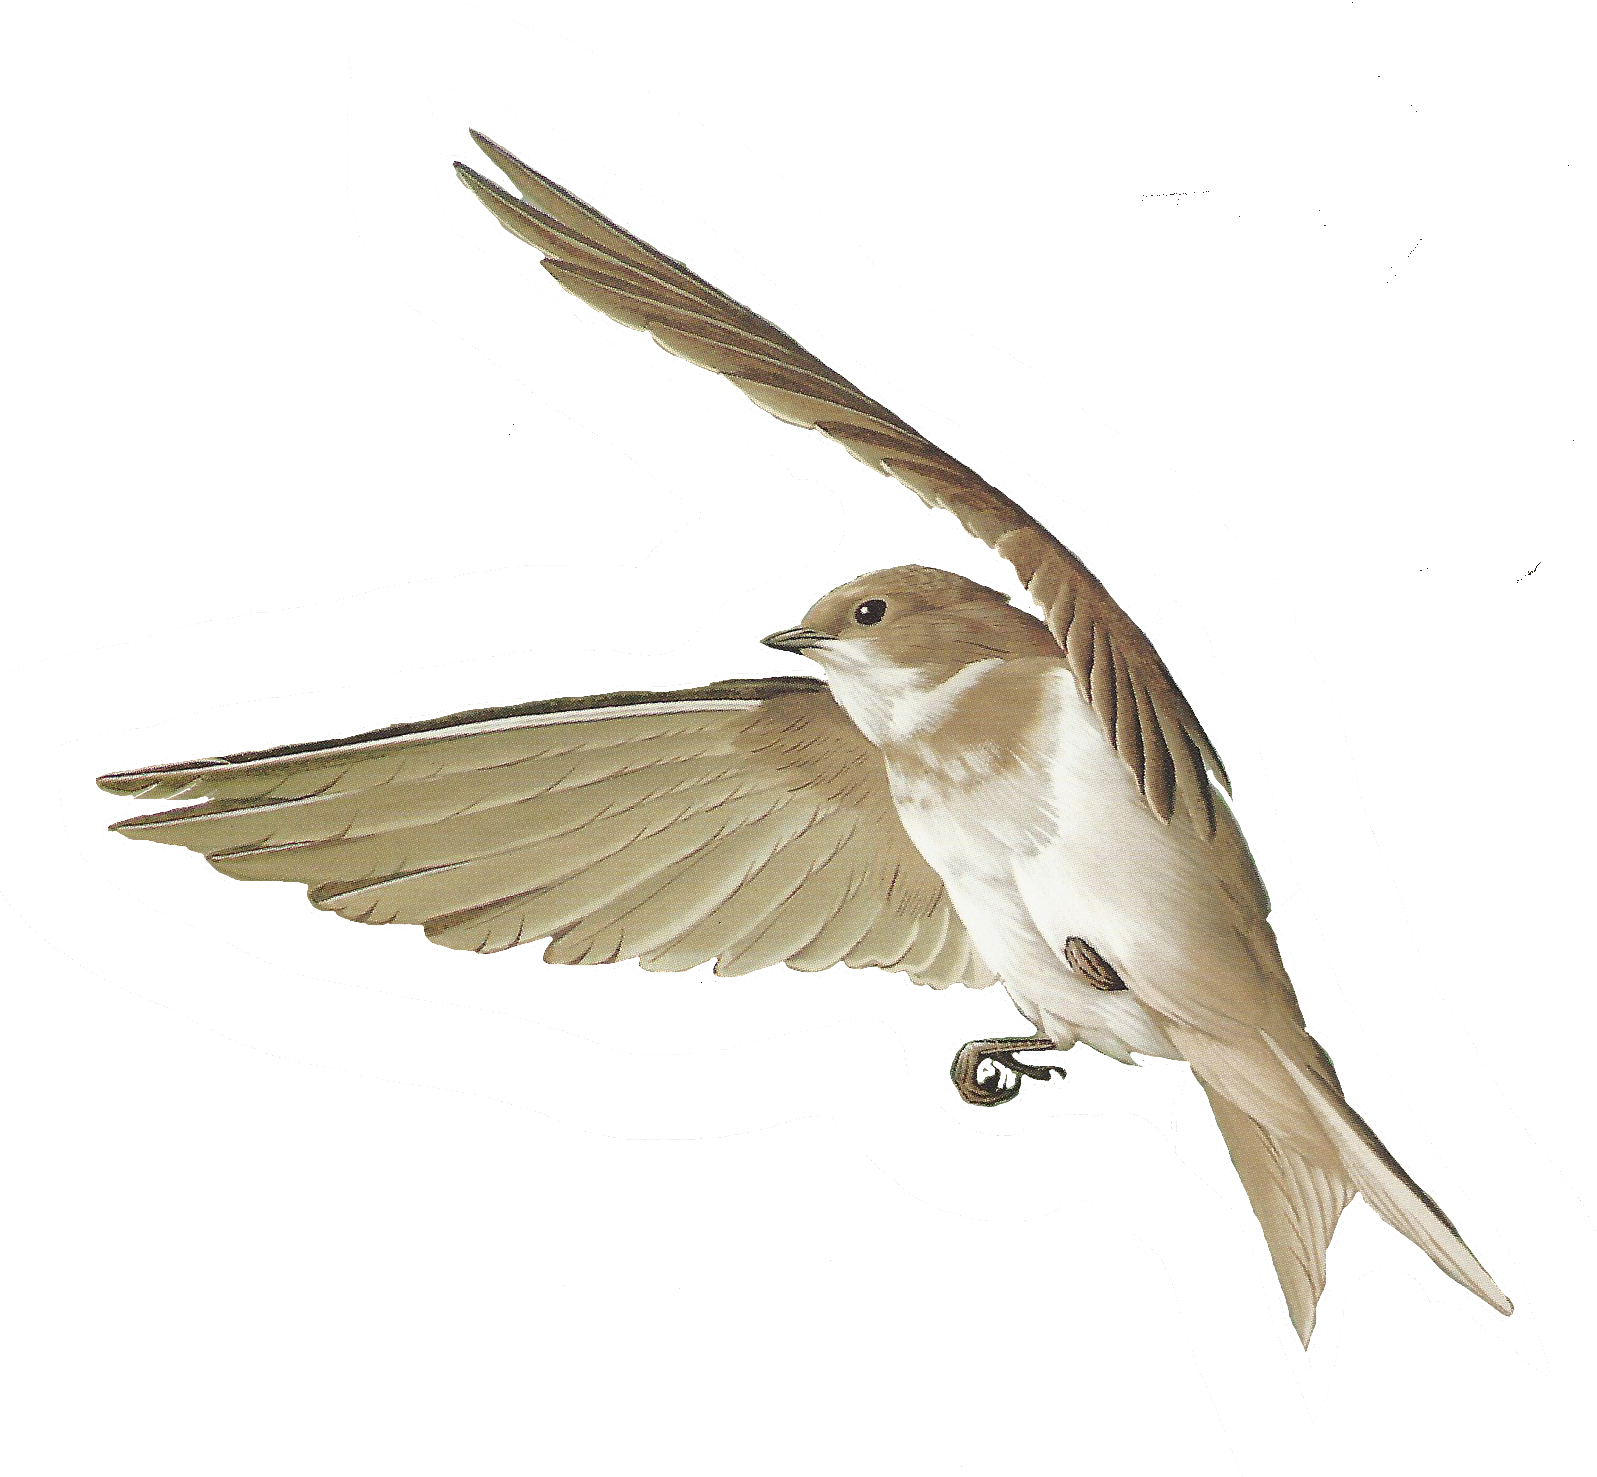 Free images of birds. Clipart bird body